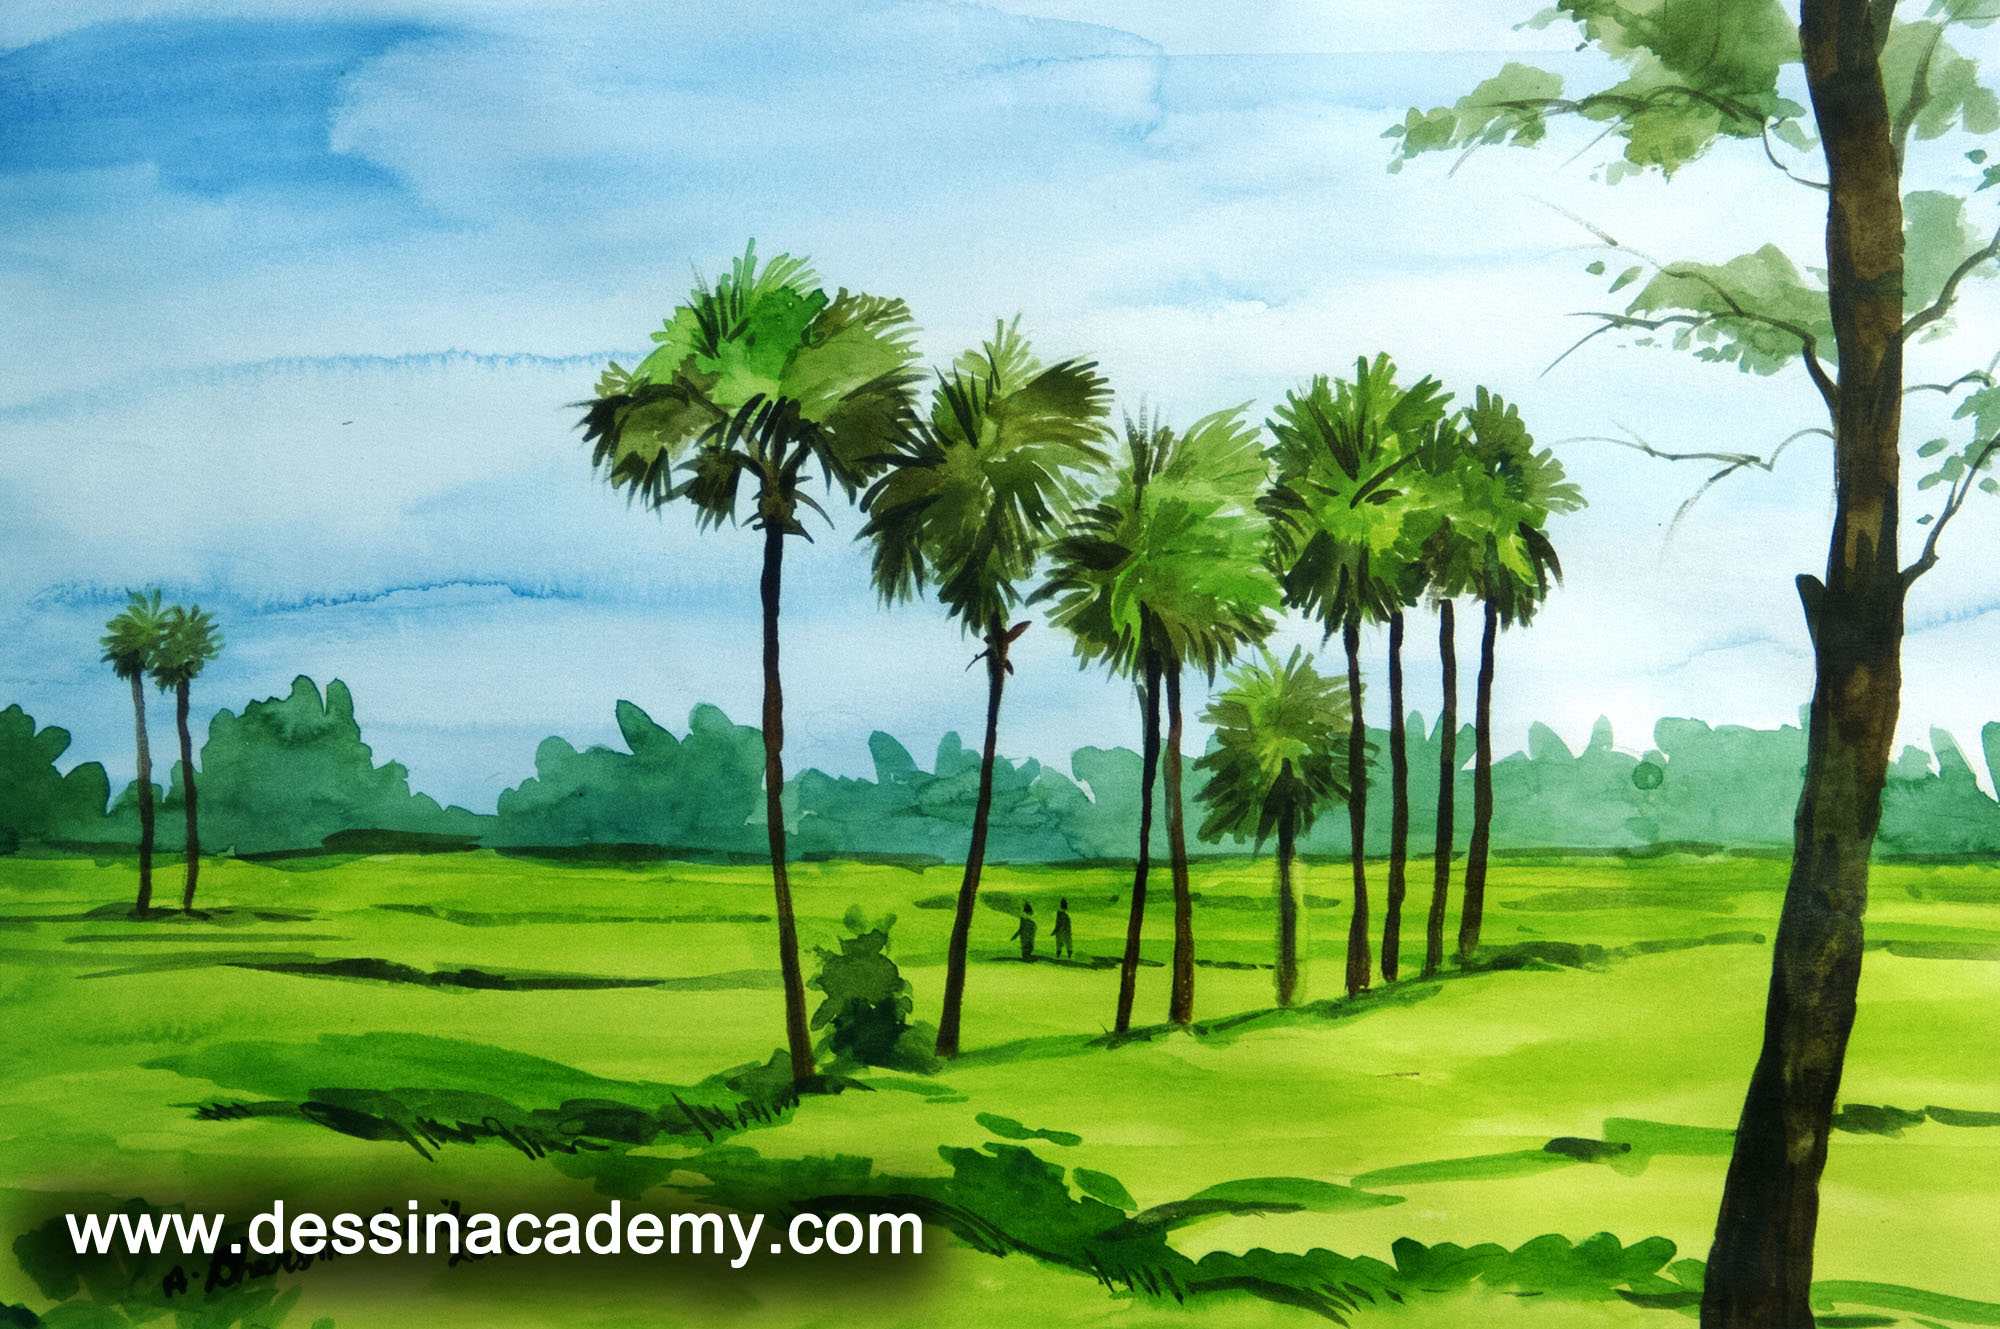 Dessin School of Arts Students Painting, Dessin School of Arts, Pencil Drawing Institute in Anna Nagar East L Block